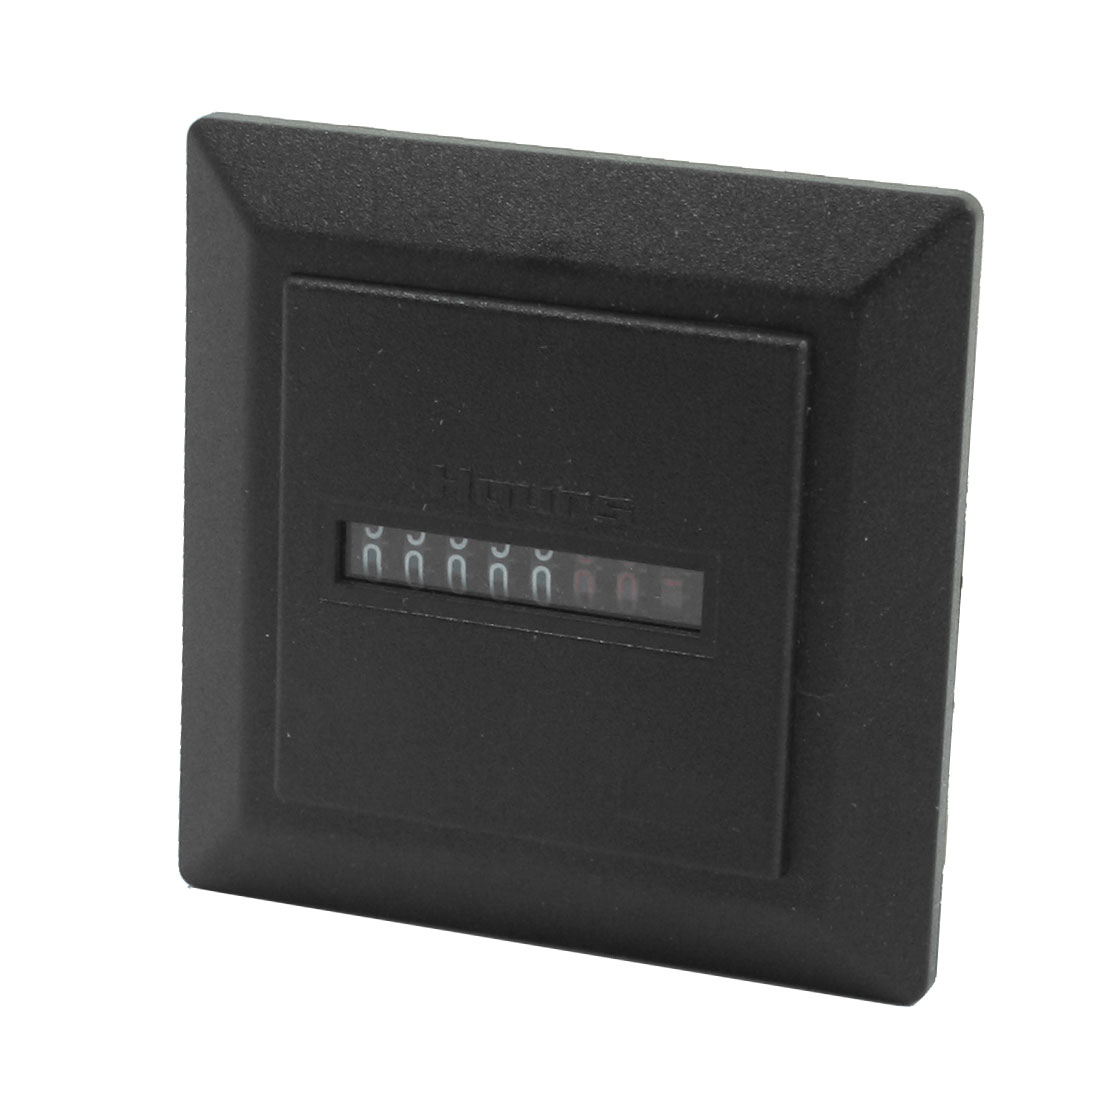 AC110V 2 Screw Terminal Black Plastic Square Panel 0-99.99999h 7-Digit Industrial Counter Hour Timer